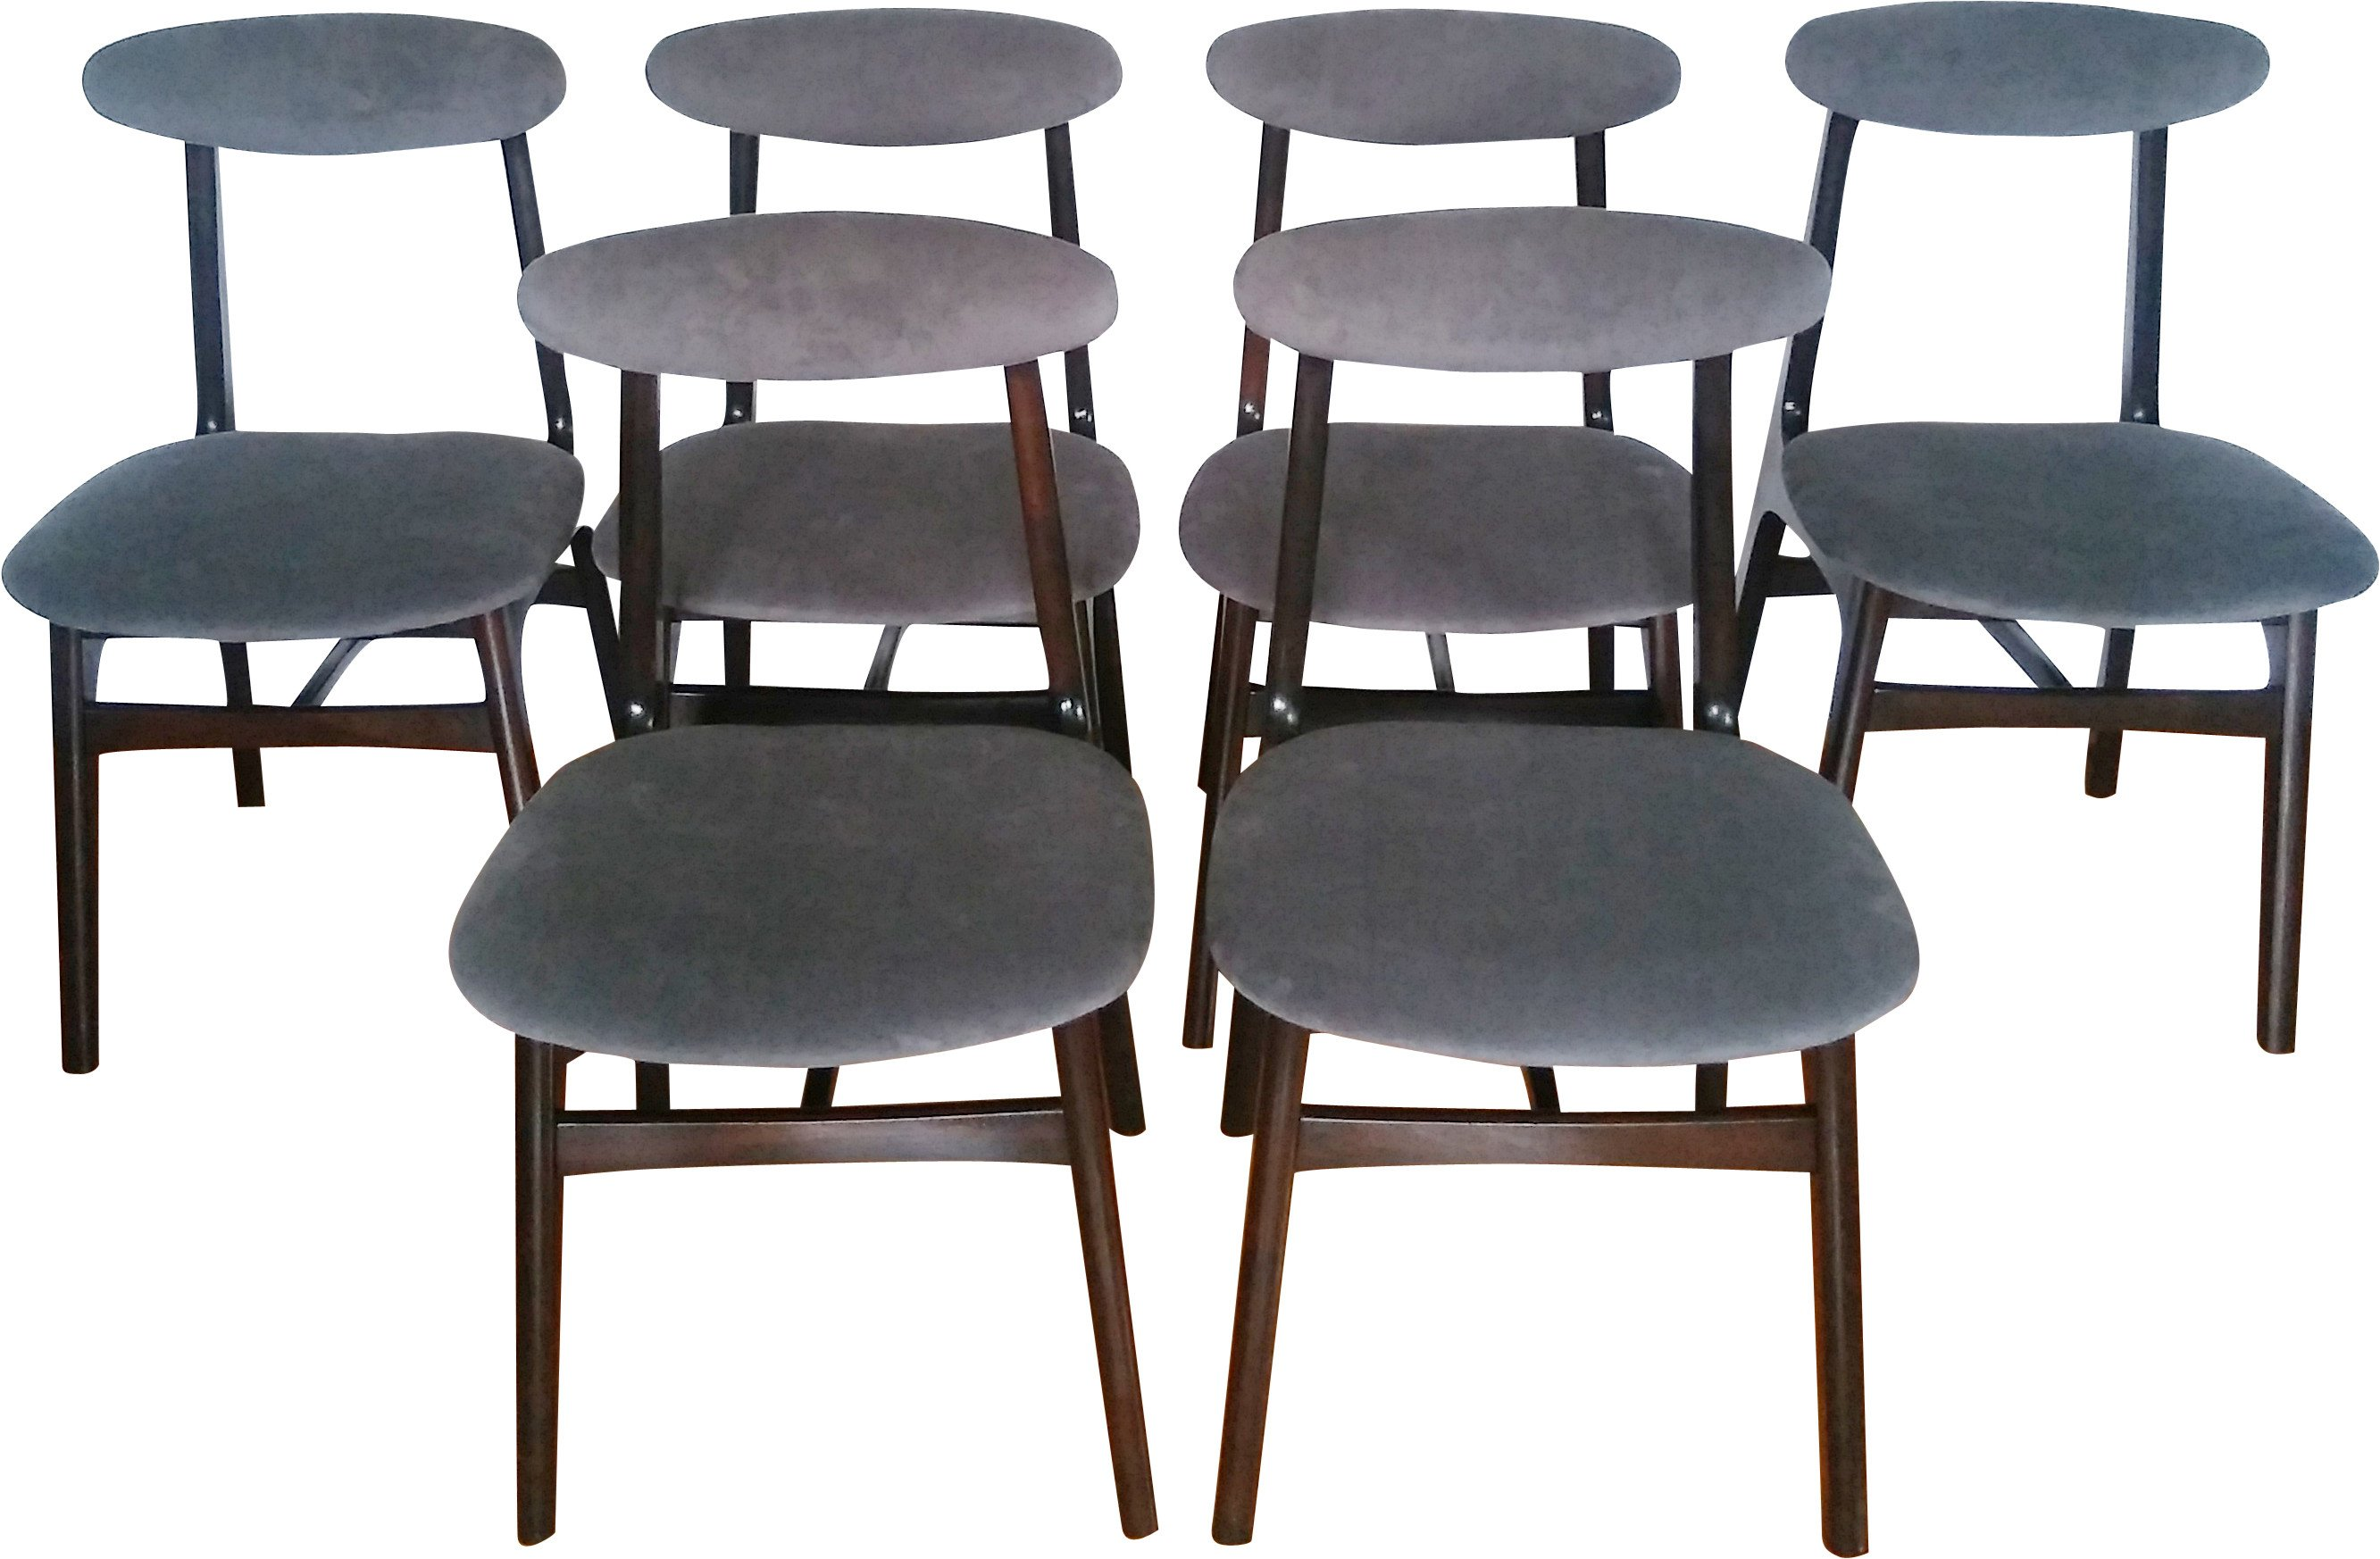 Set of Six Chairs by R. Hałaas, Poland, 1960s